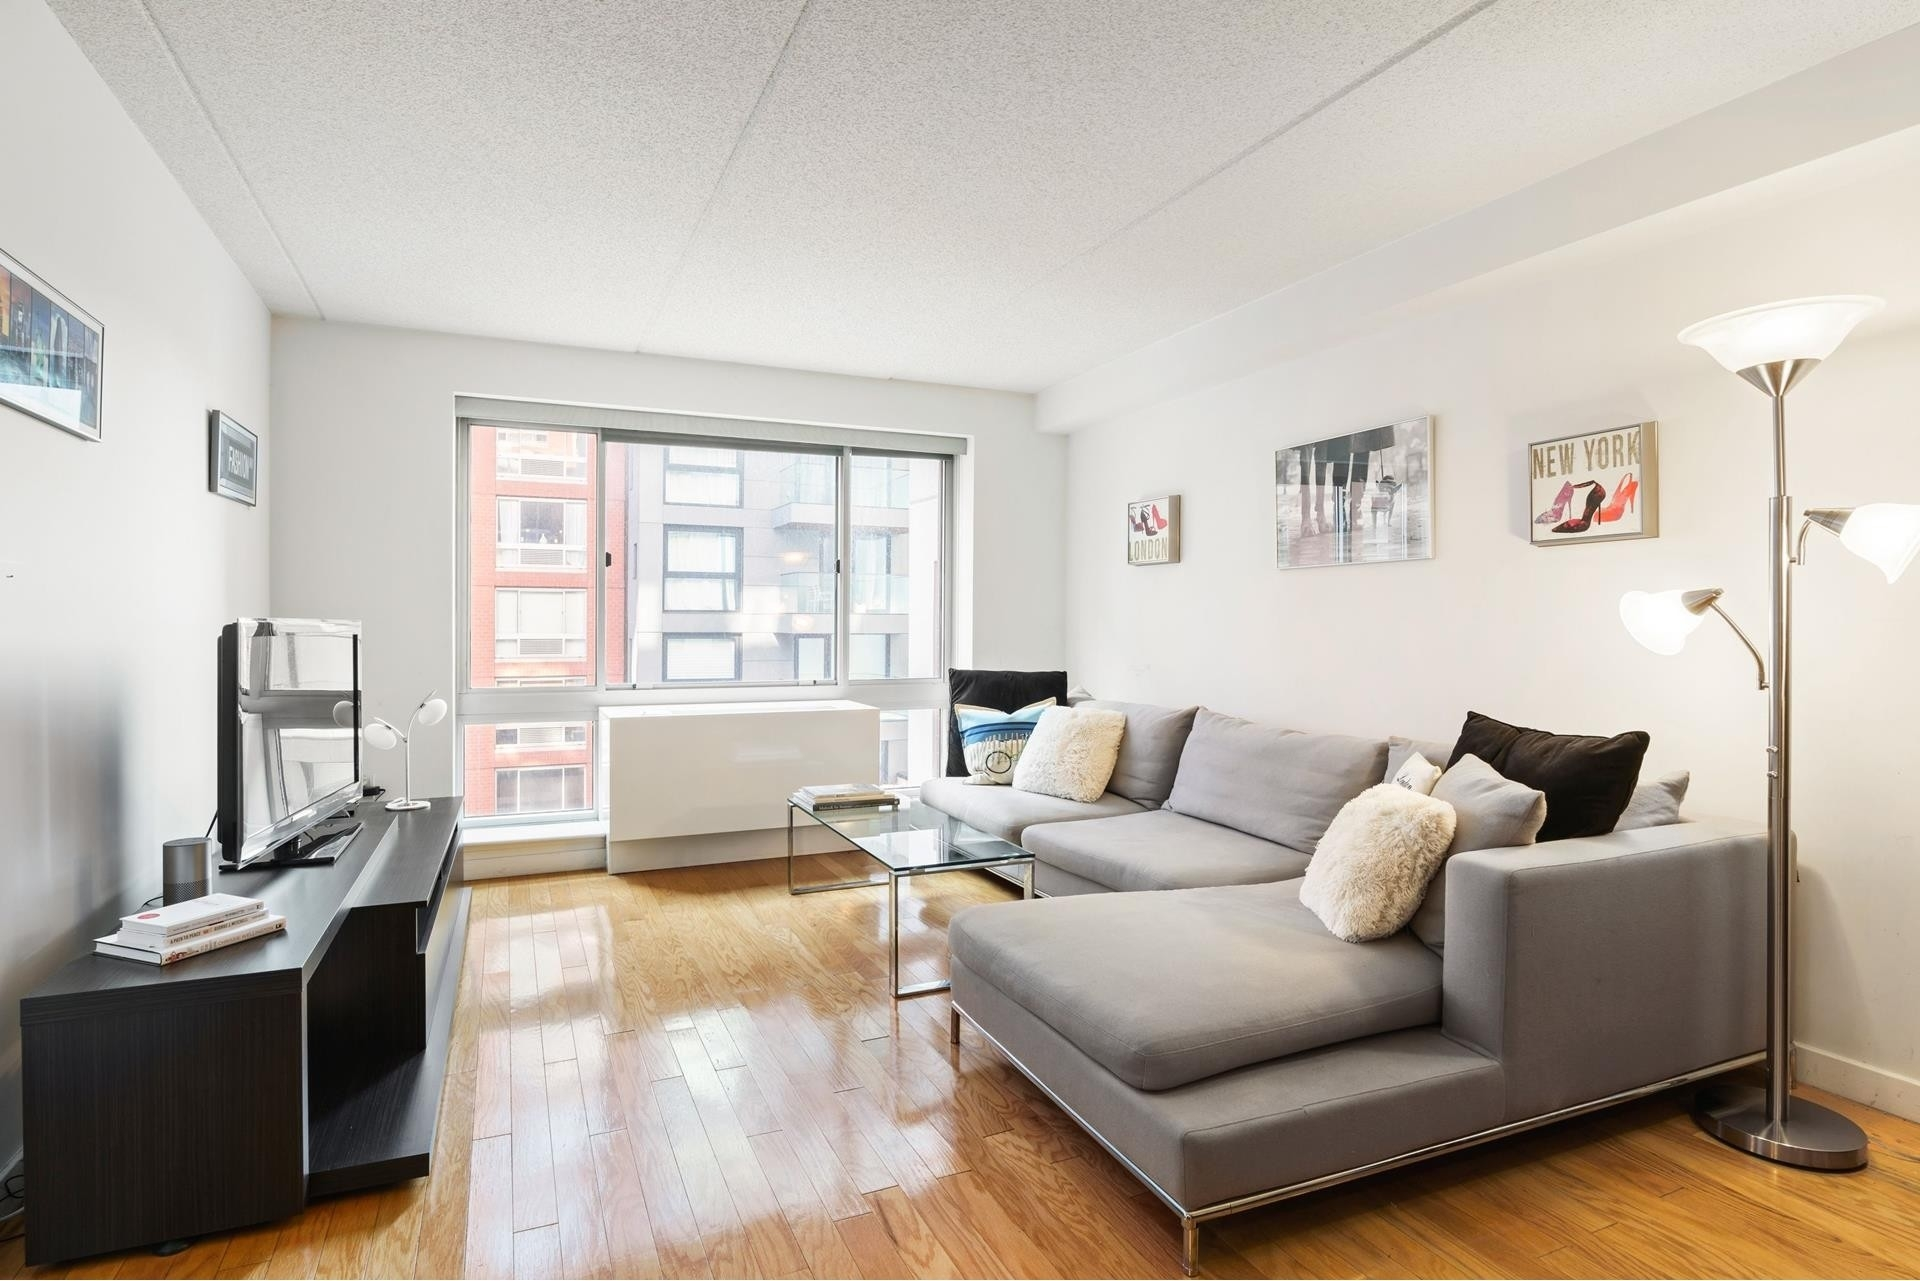 Condominium at 555 West 23rd St, N4E Chelsea, New York